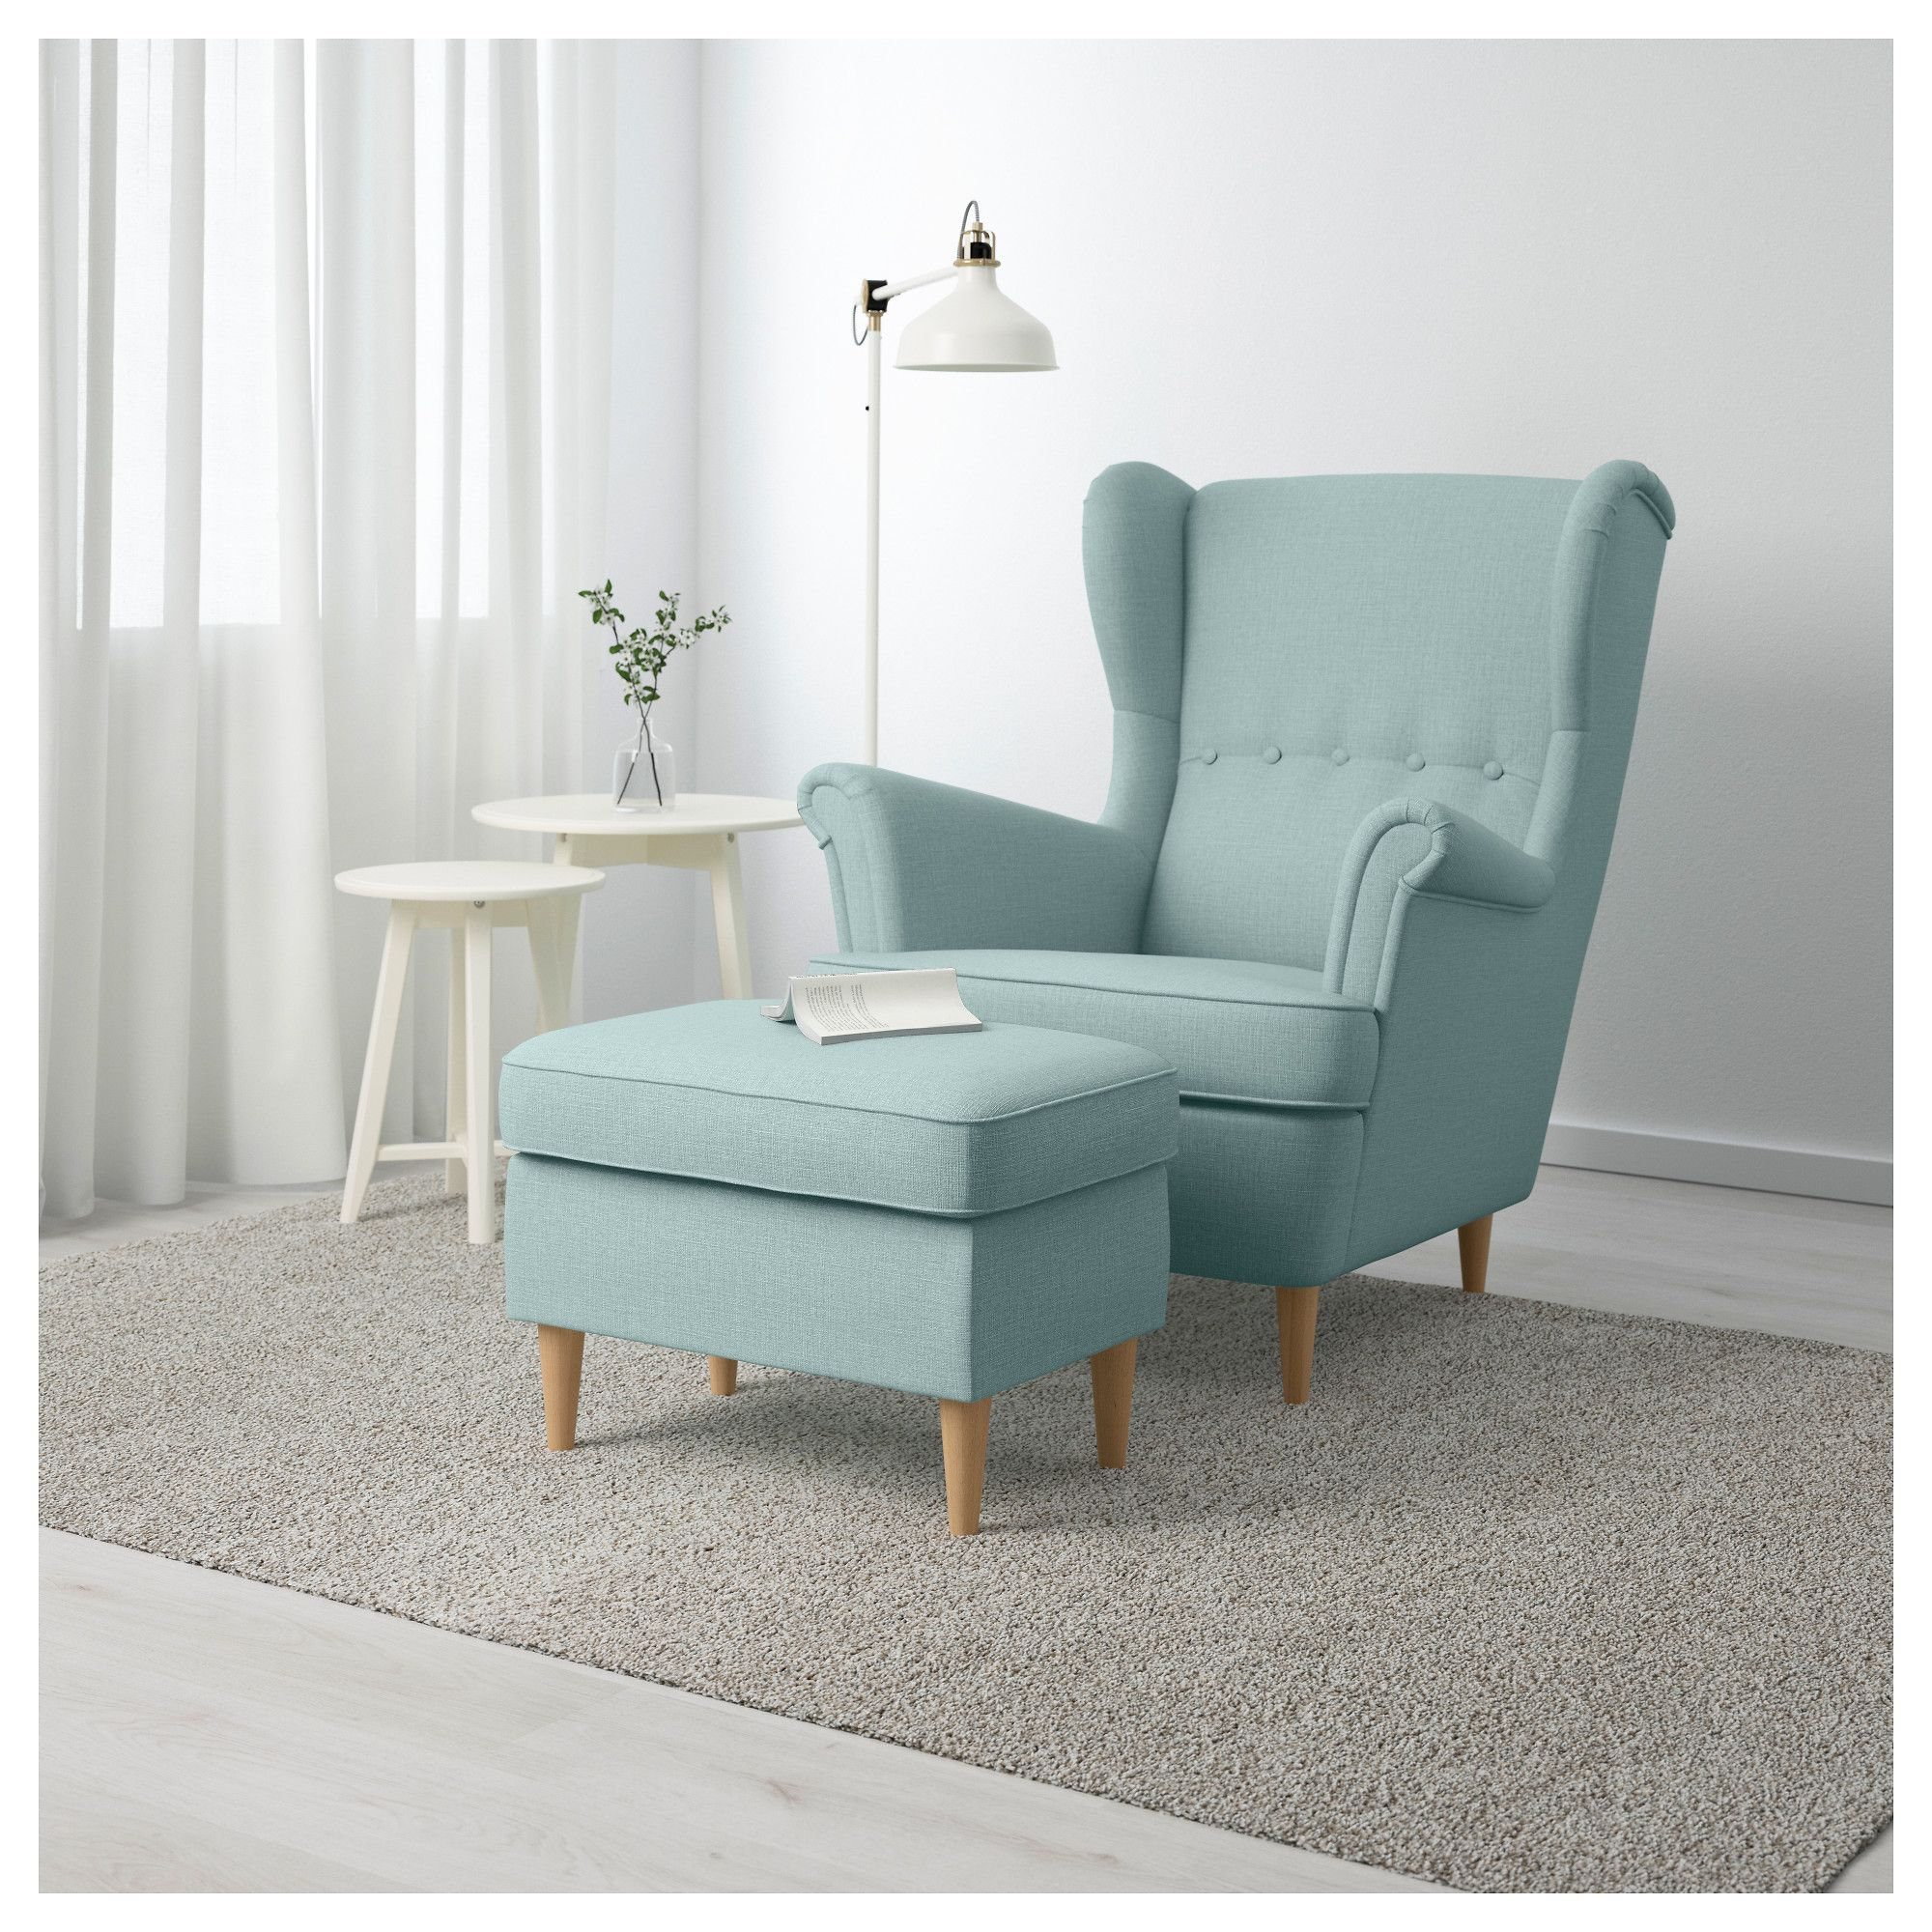 Swell Us Furniture And Home Furnishings In 2019 Ikea Strandmon Theyellowbook Wood Chair Design Ideas Theyellowbookinfo